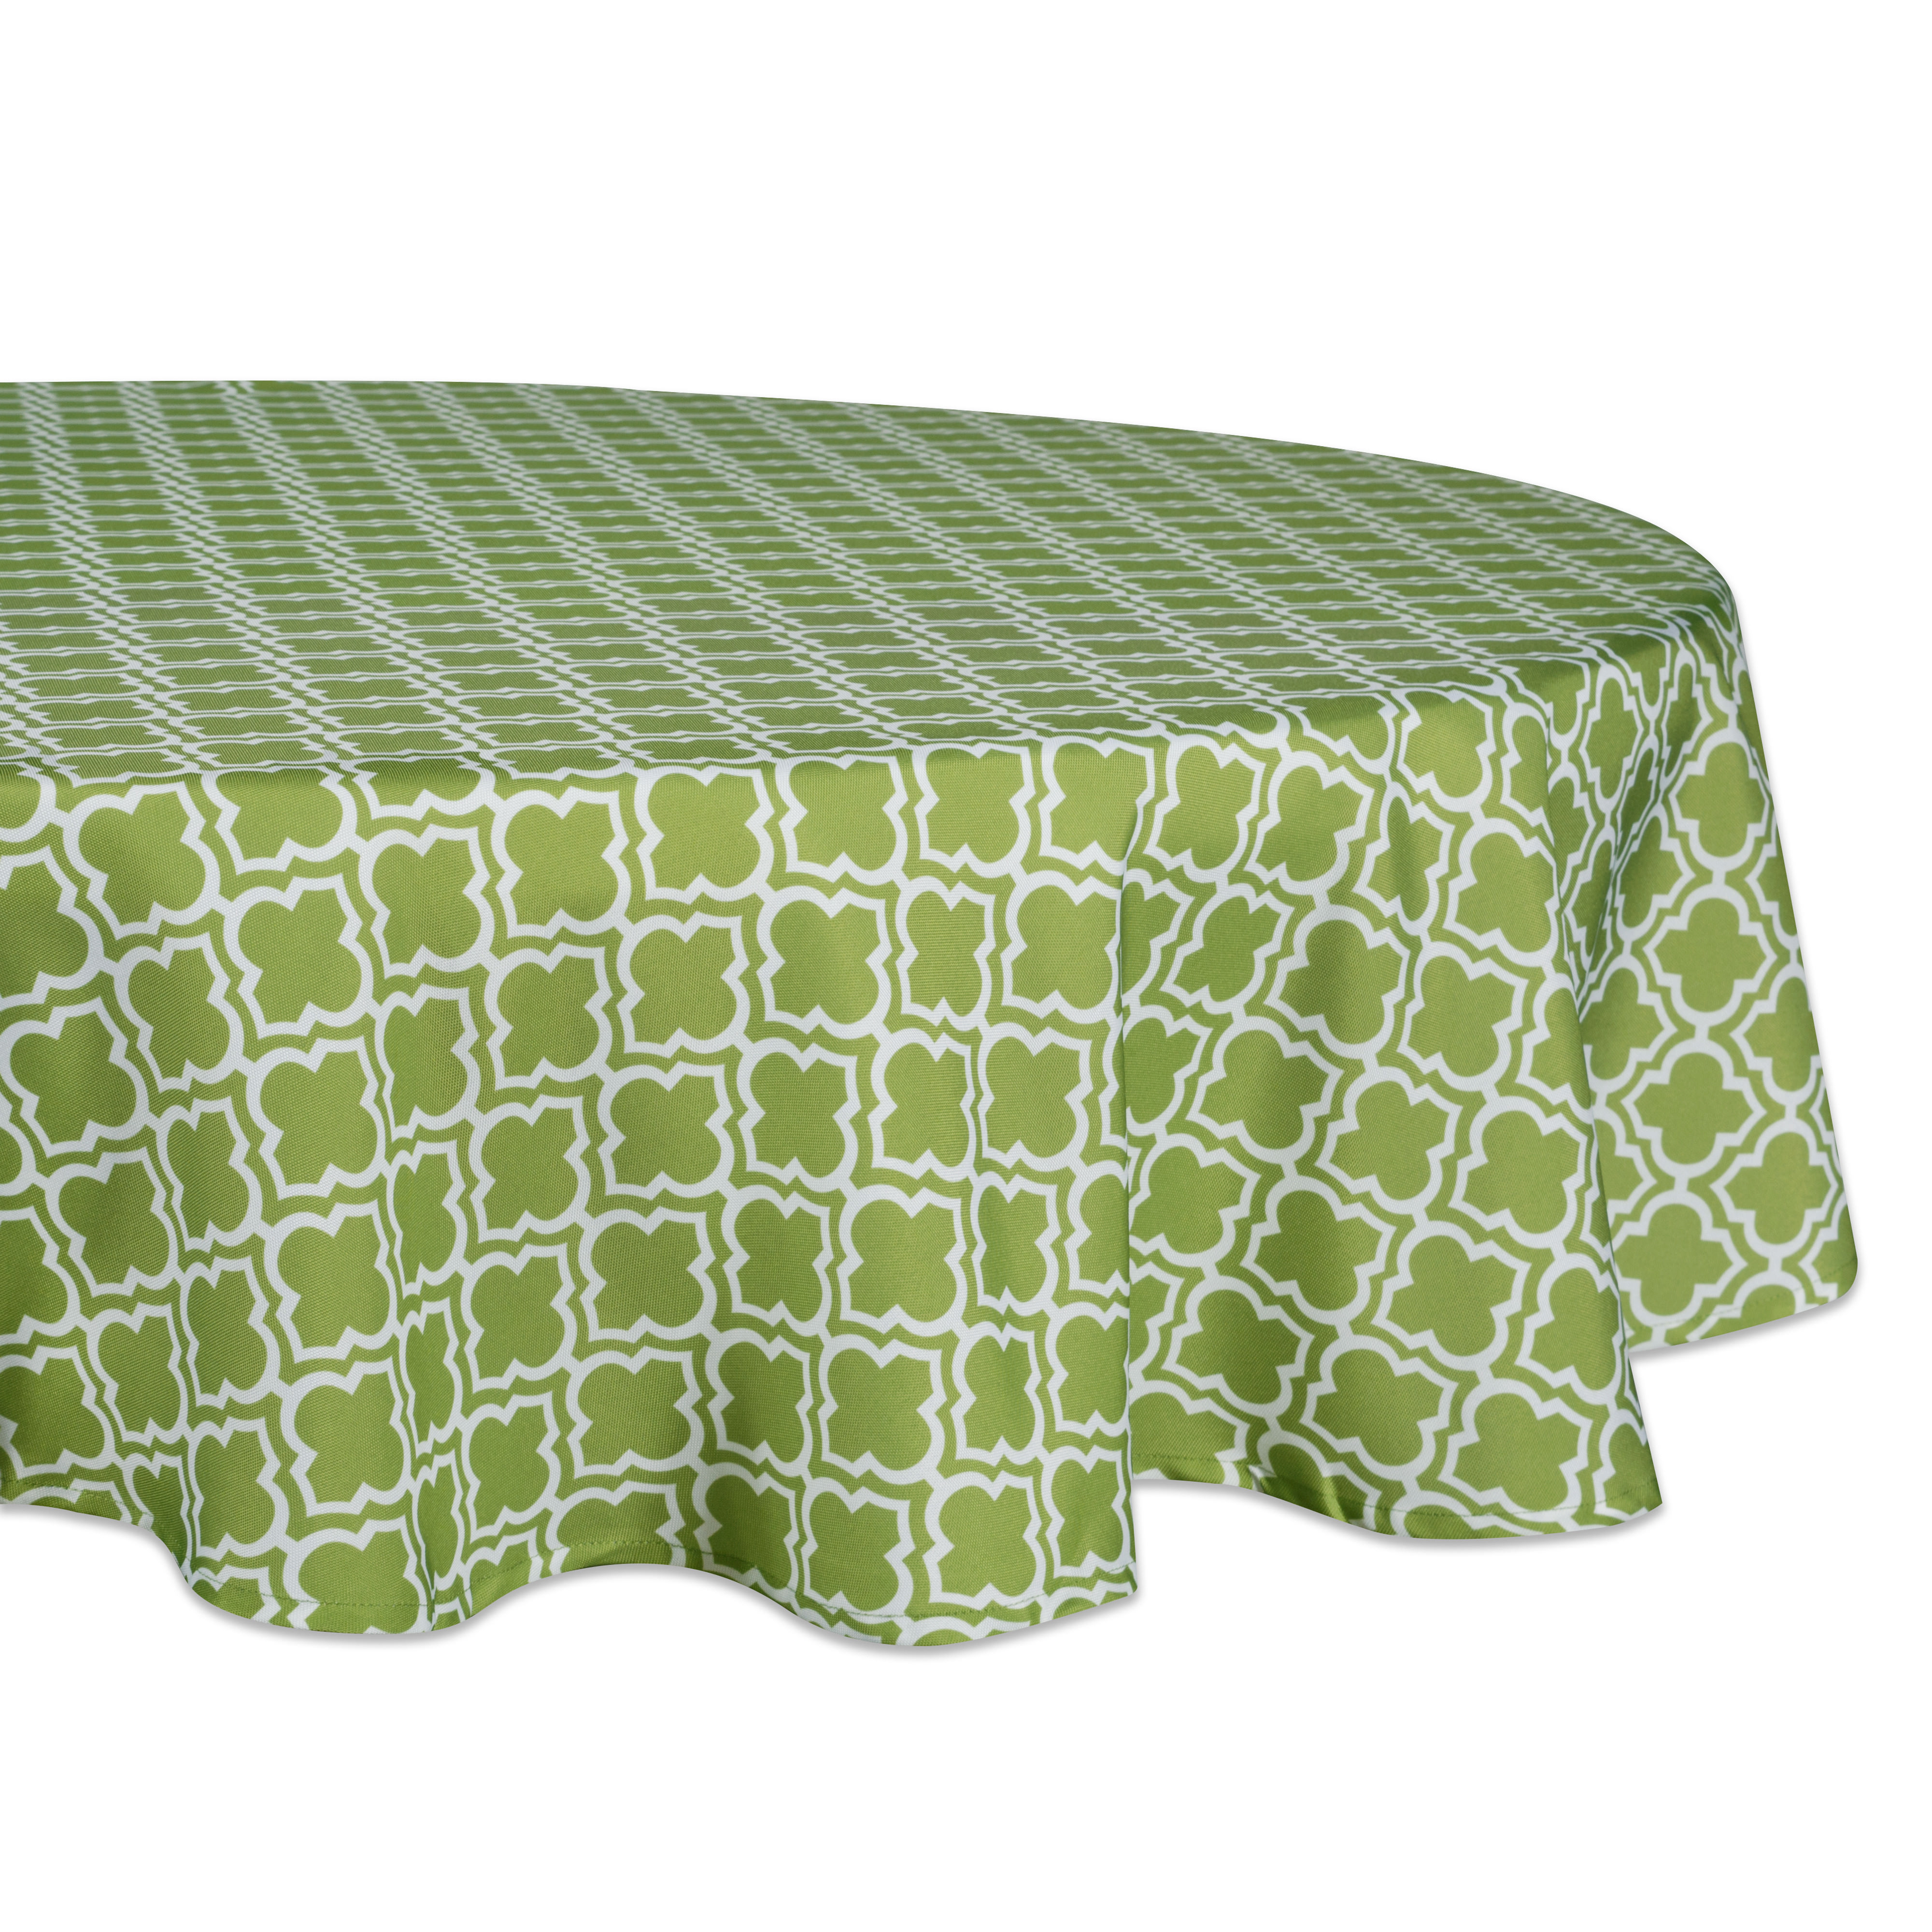 """Design Imports Casual Round Lattice Outdoor Tablecloth, 60"""" x 60"""", 100% Polyester, Green"""